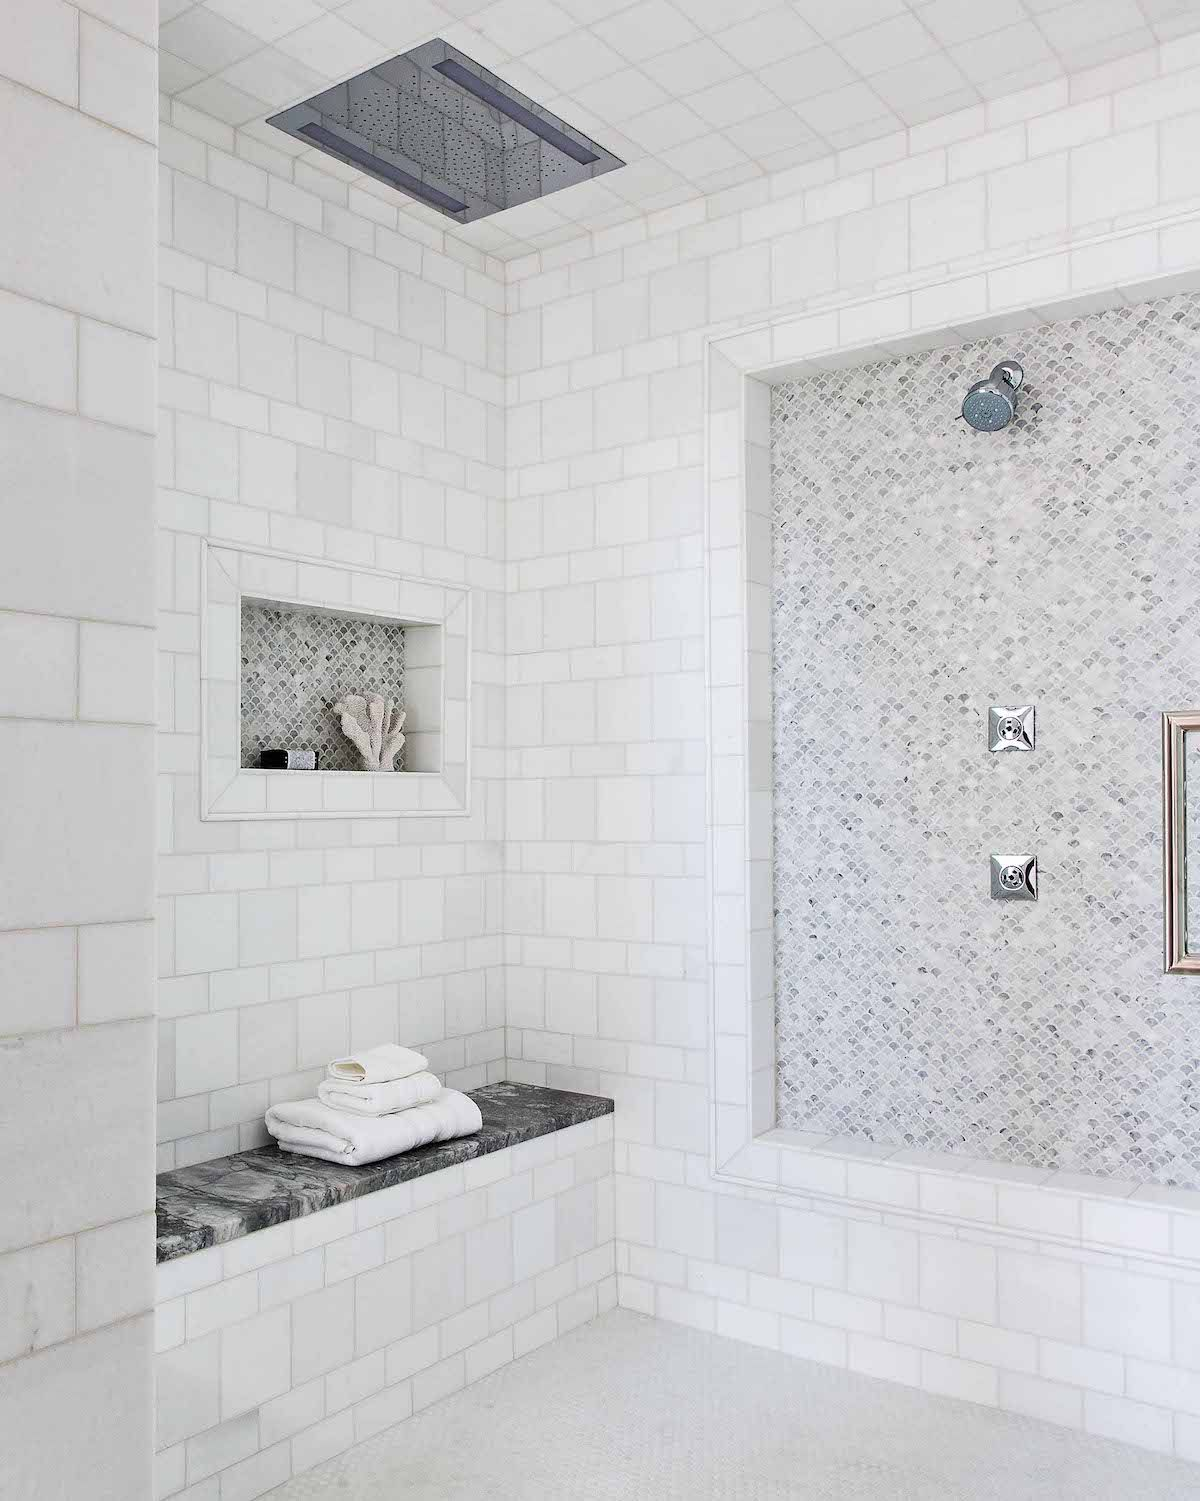 Charming Calgary Home Tour Interview With Designer Reena Sotropa White Marble Tile Bathroom White Marble Bathrooms Bathroom Tiles Images